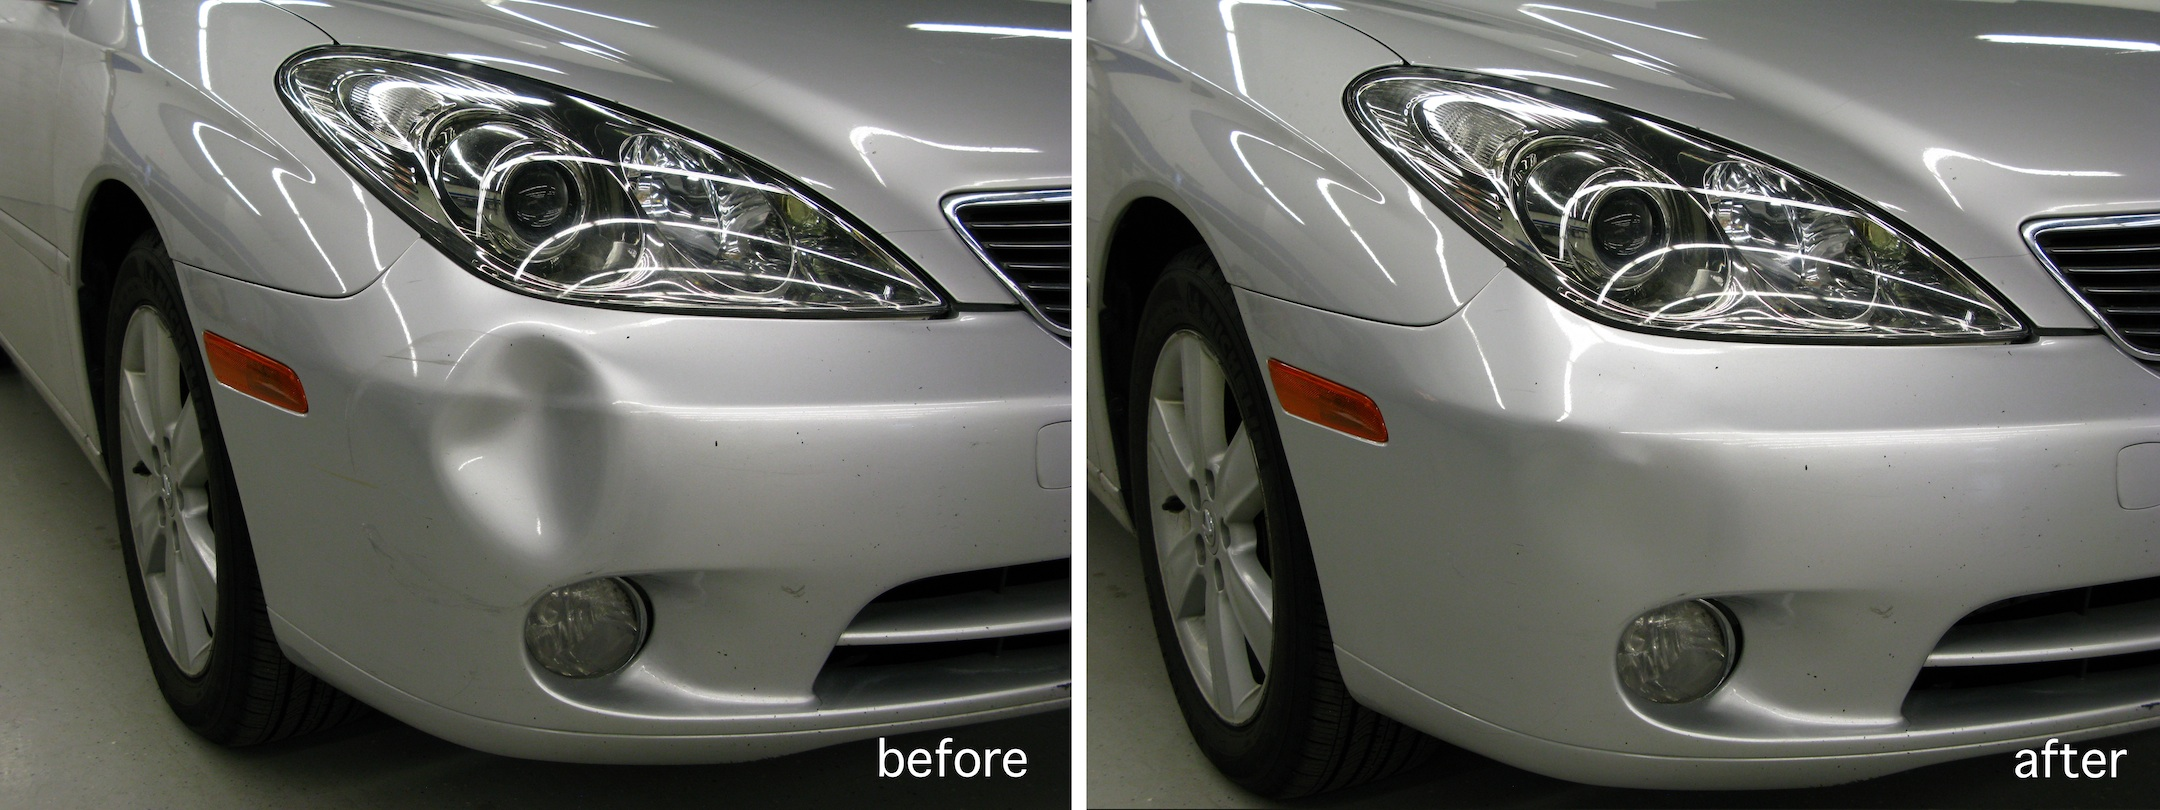 Car paint protection cost